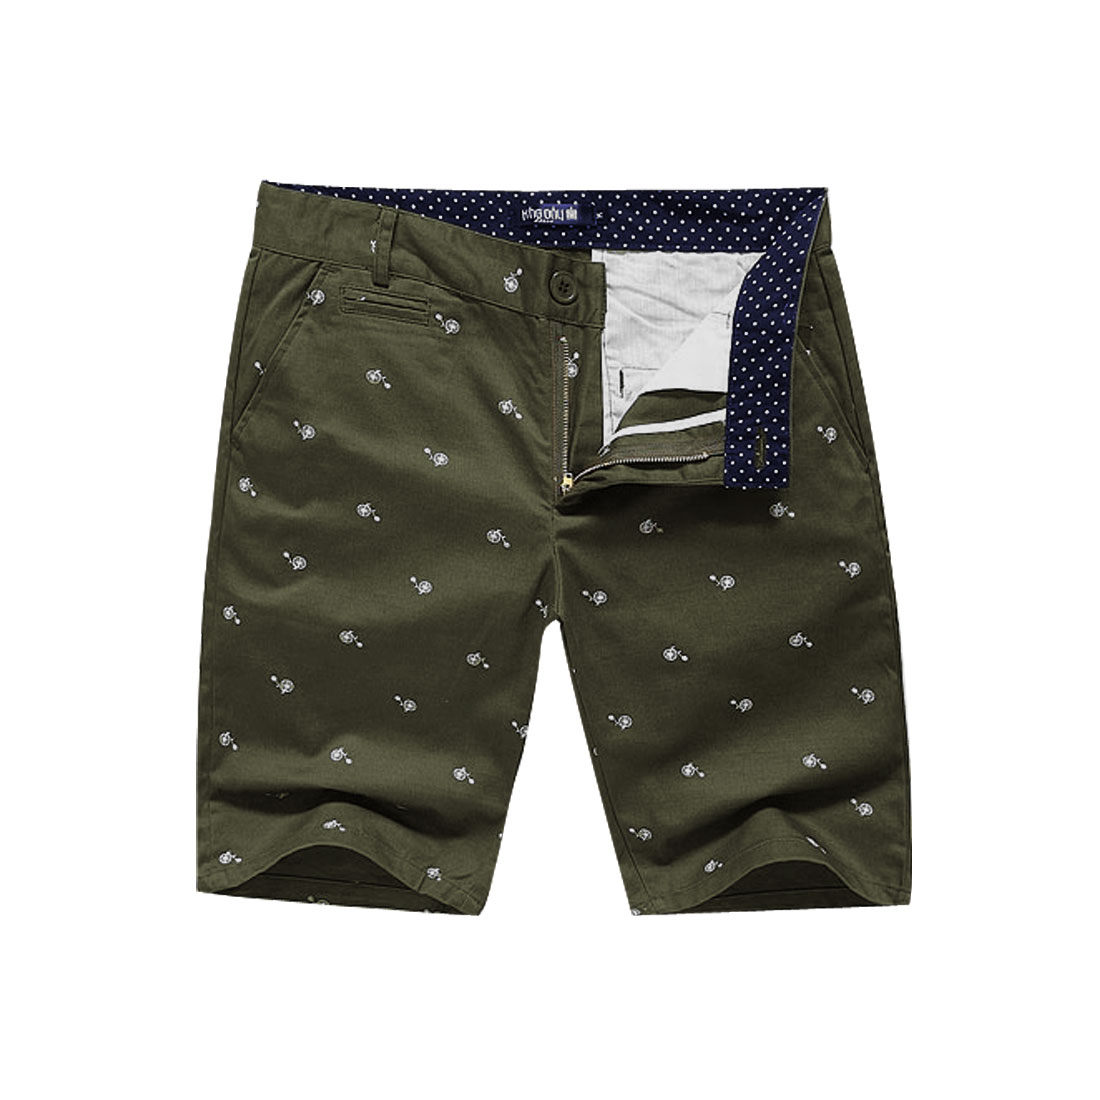 Man Stylish Slant Pockets Bicycle Dots Details Shorts Army Green W33